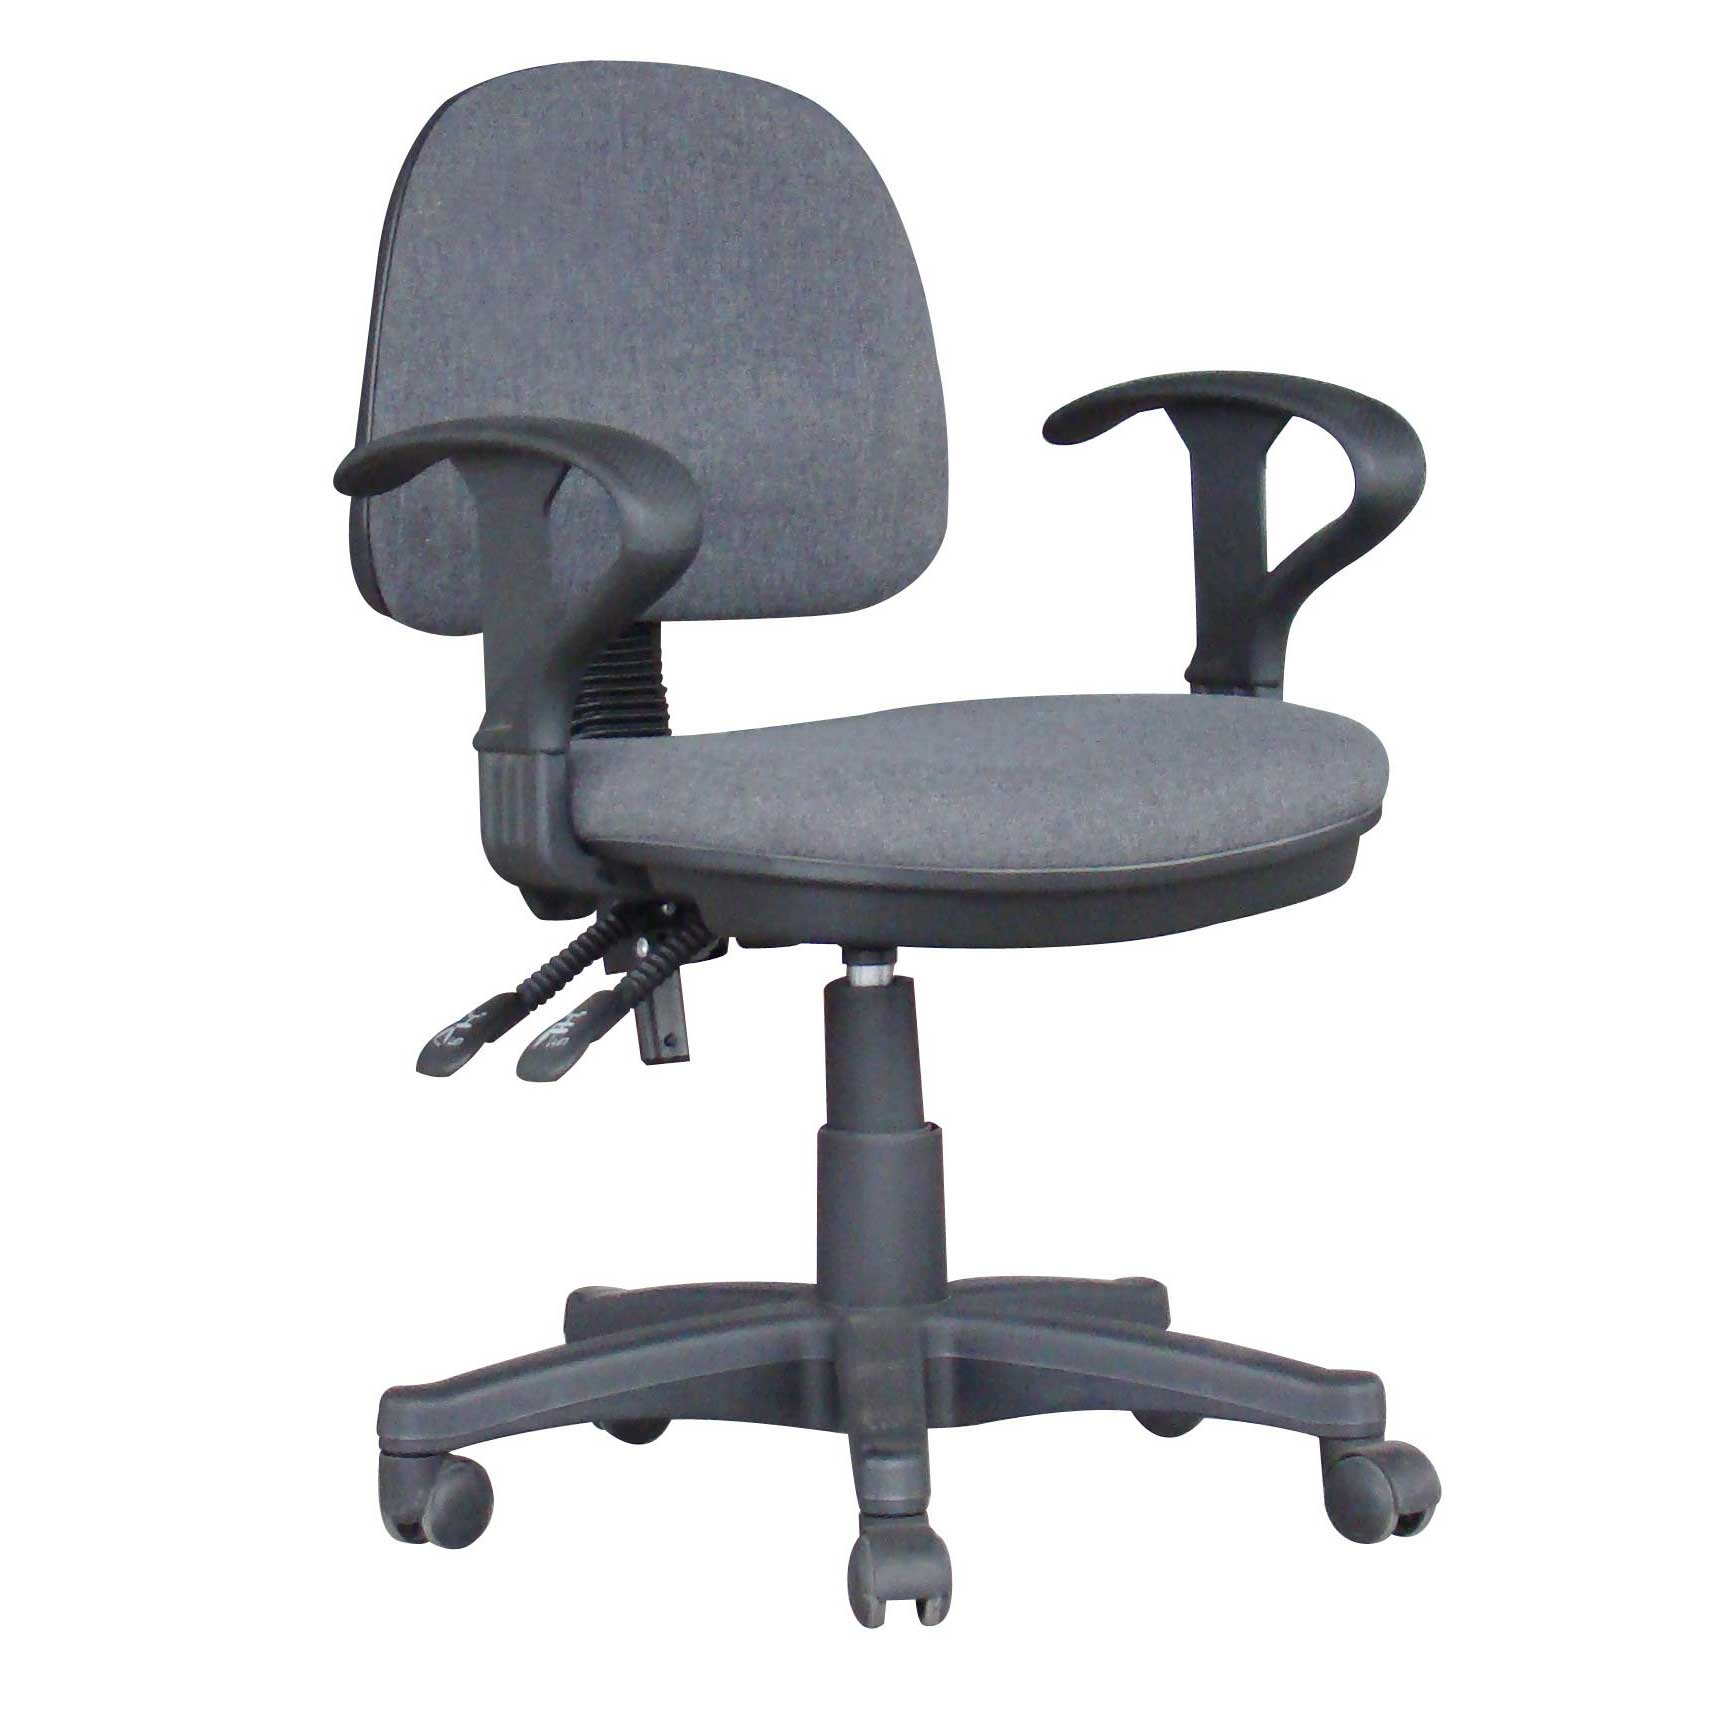 Chairs Cheap Office Chairs Adjustable Office Chairs